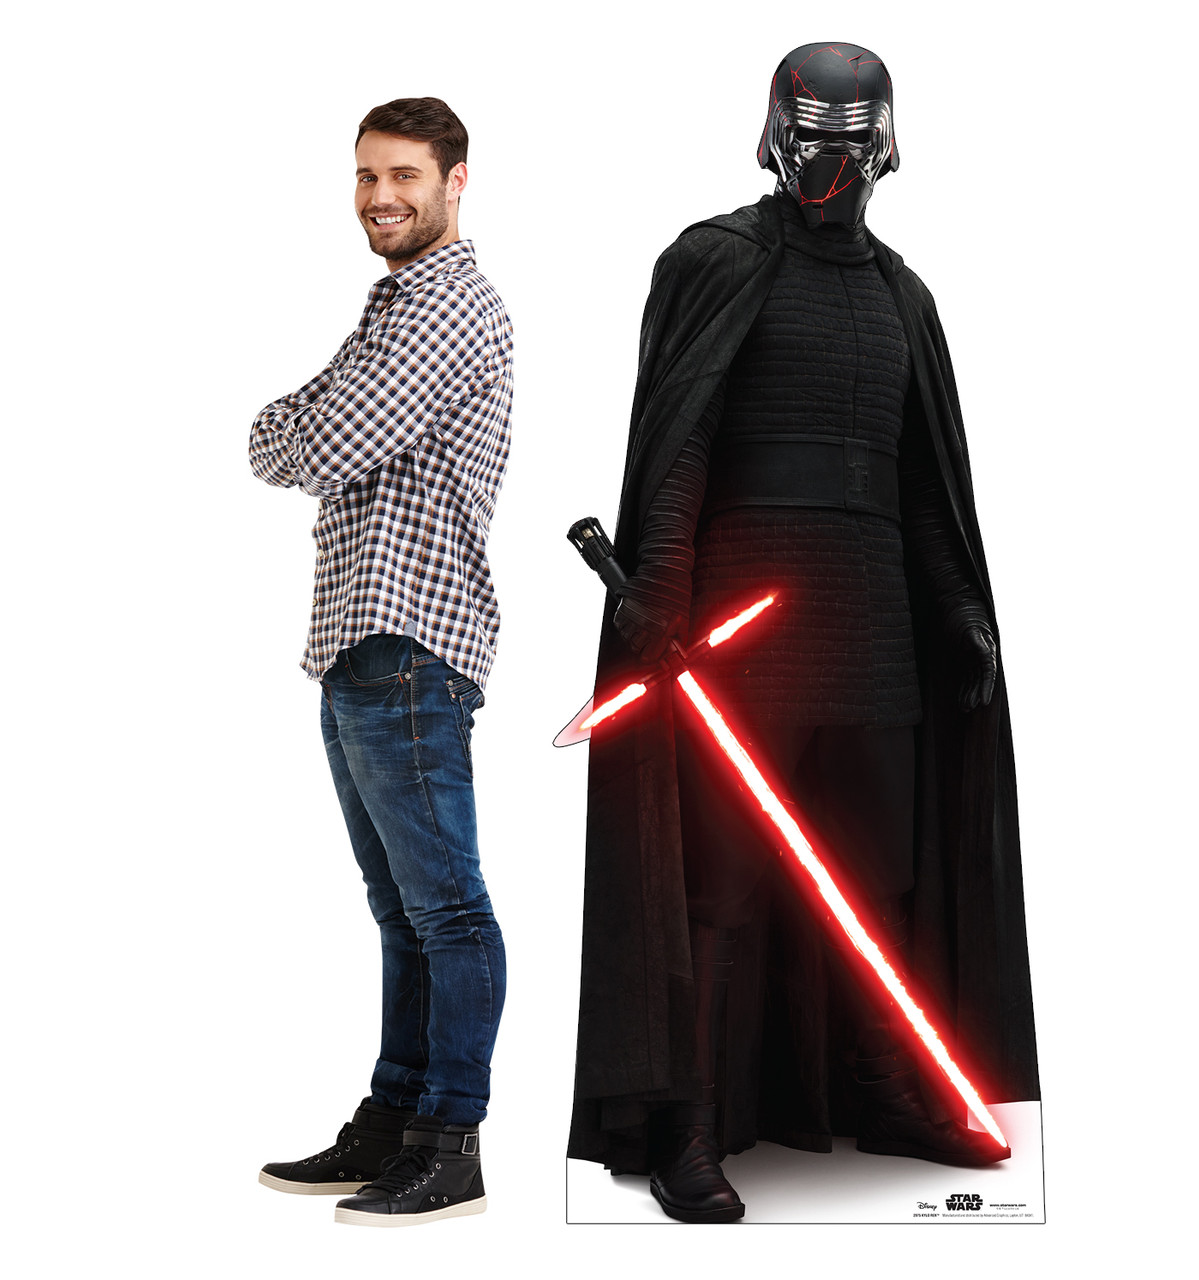 Life-size cardboard standee of Kylo Ren™ (Star Wars IX) with model.